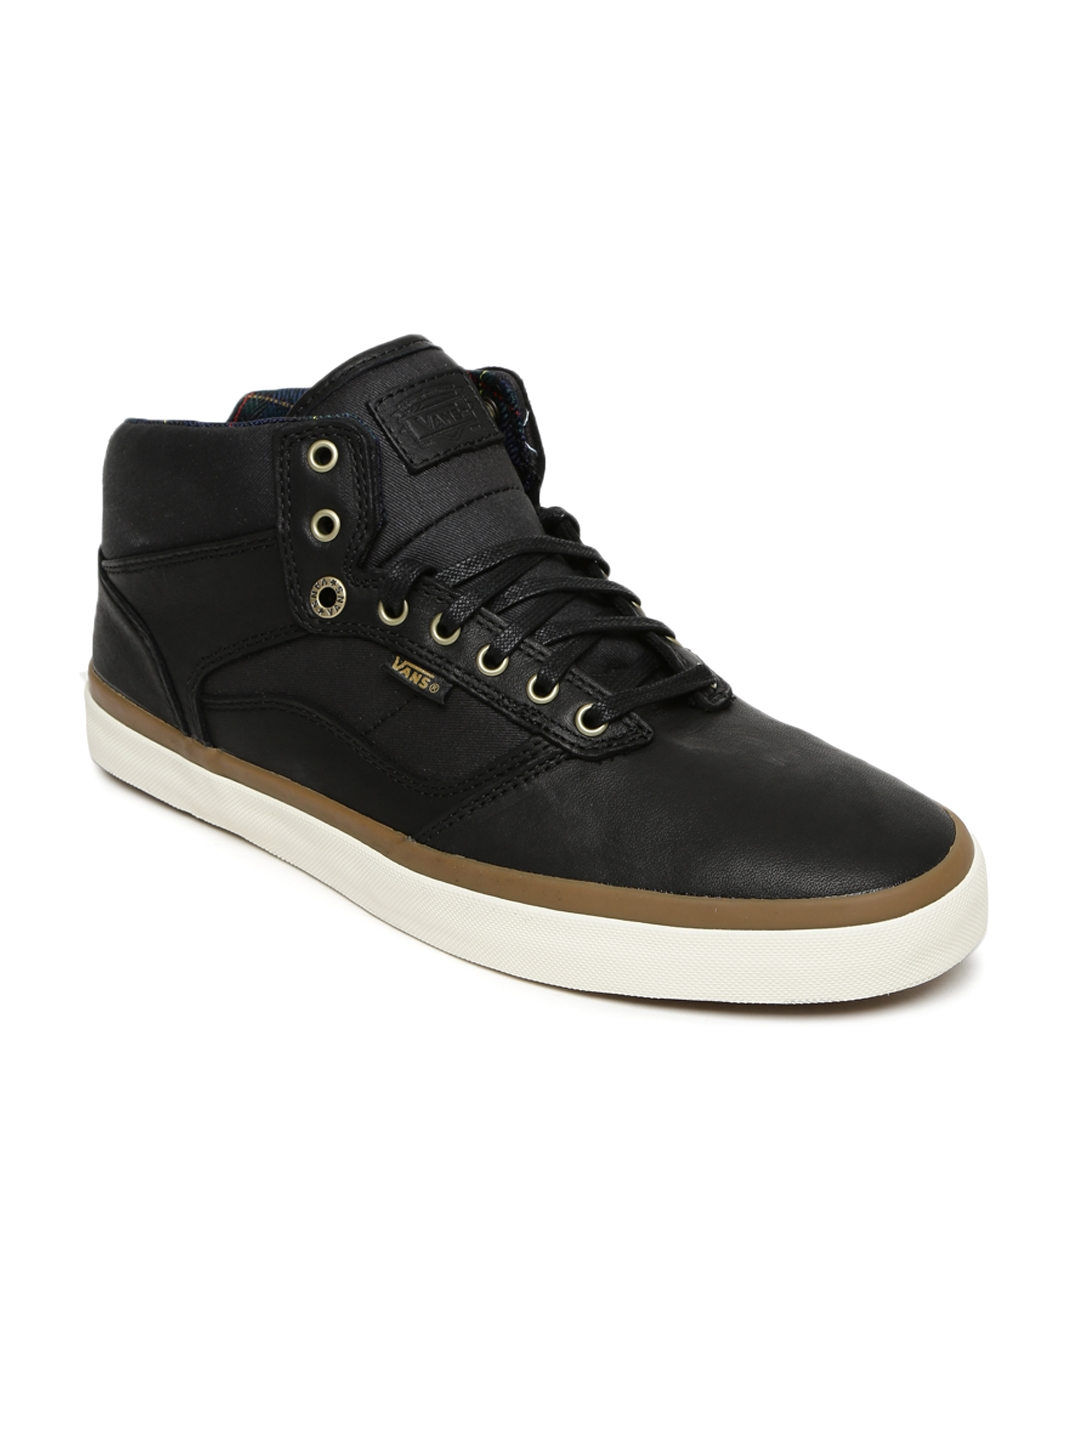 3f732b98b4 Buy Vans Men Black Bedford Leather Sneakers - Casual Shoes for Men ...